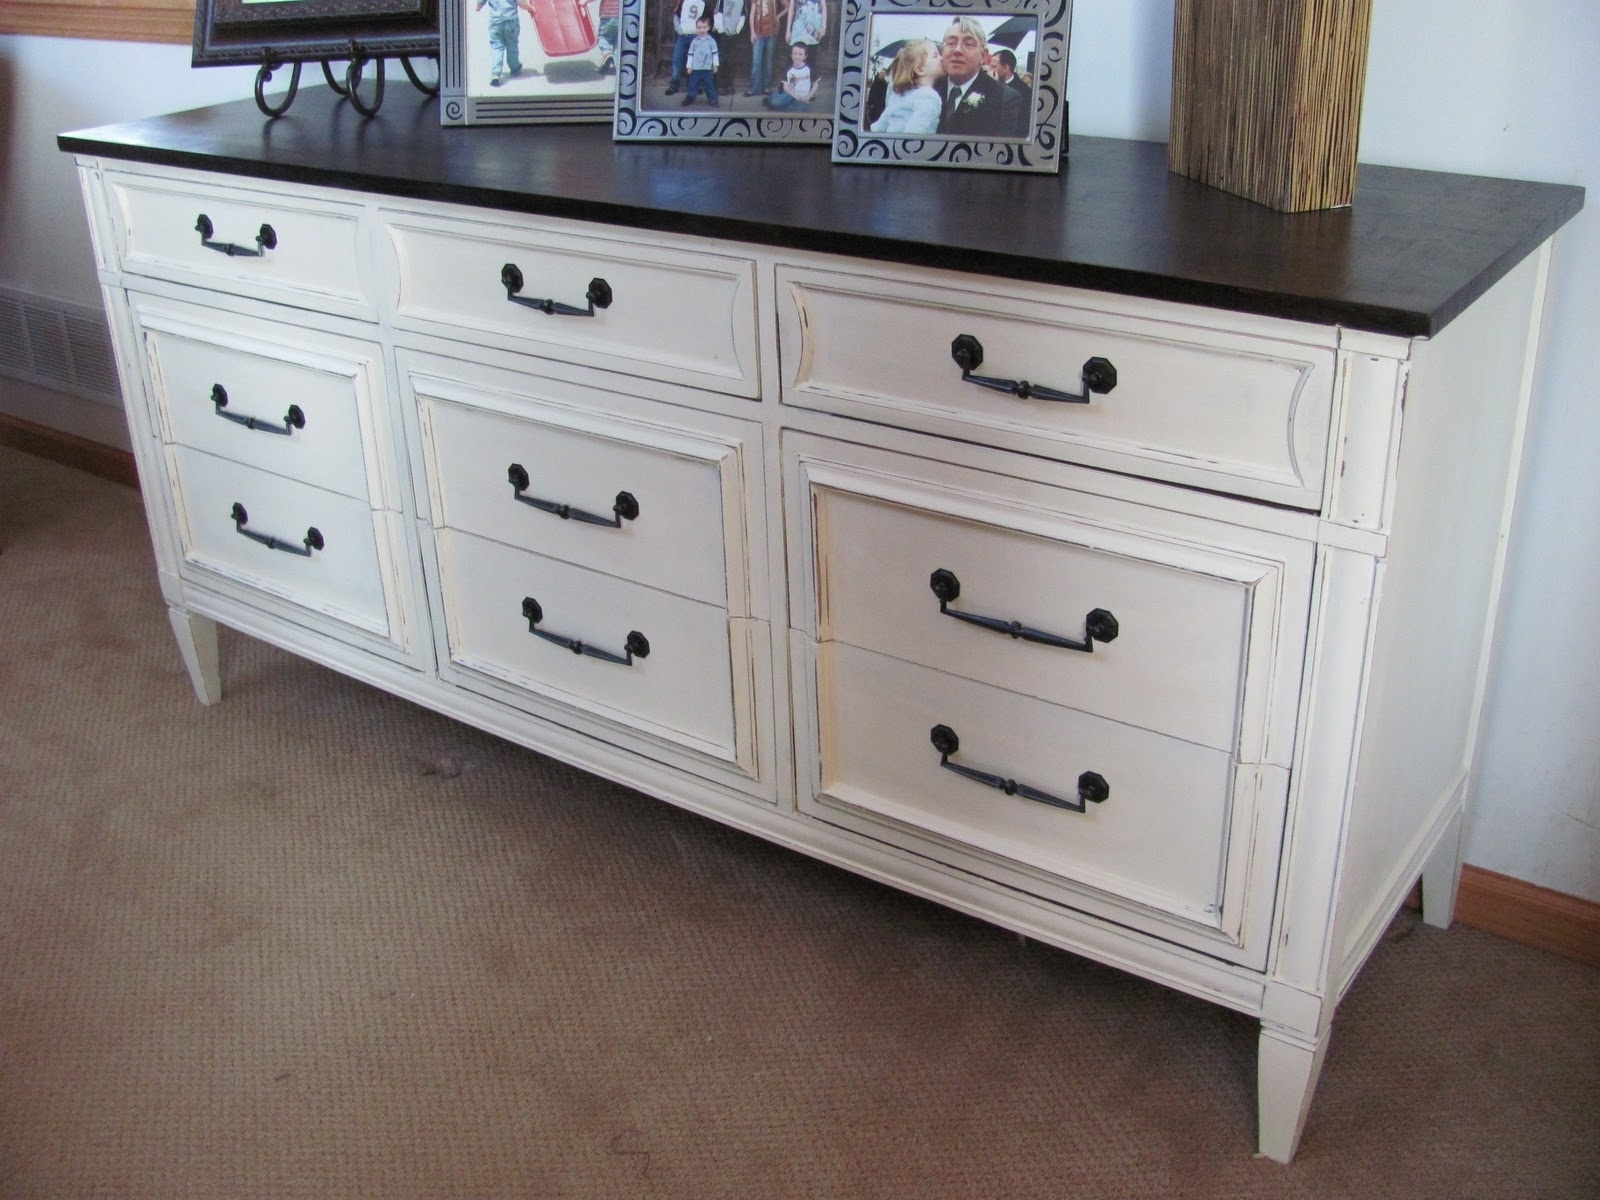 Header: September 2011 with Satin Black & Painted White Sideboards (Image 9 of 30)